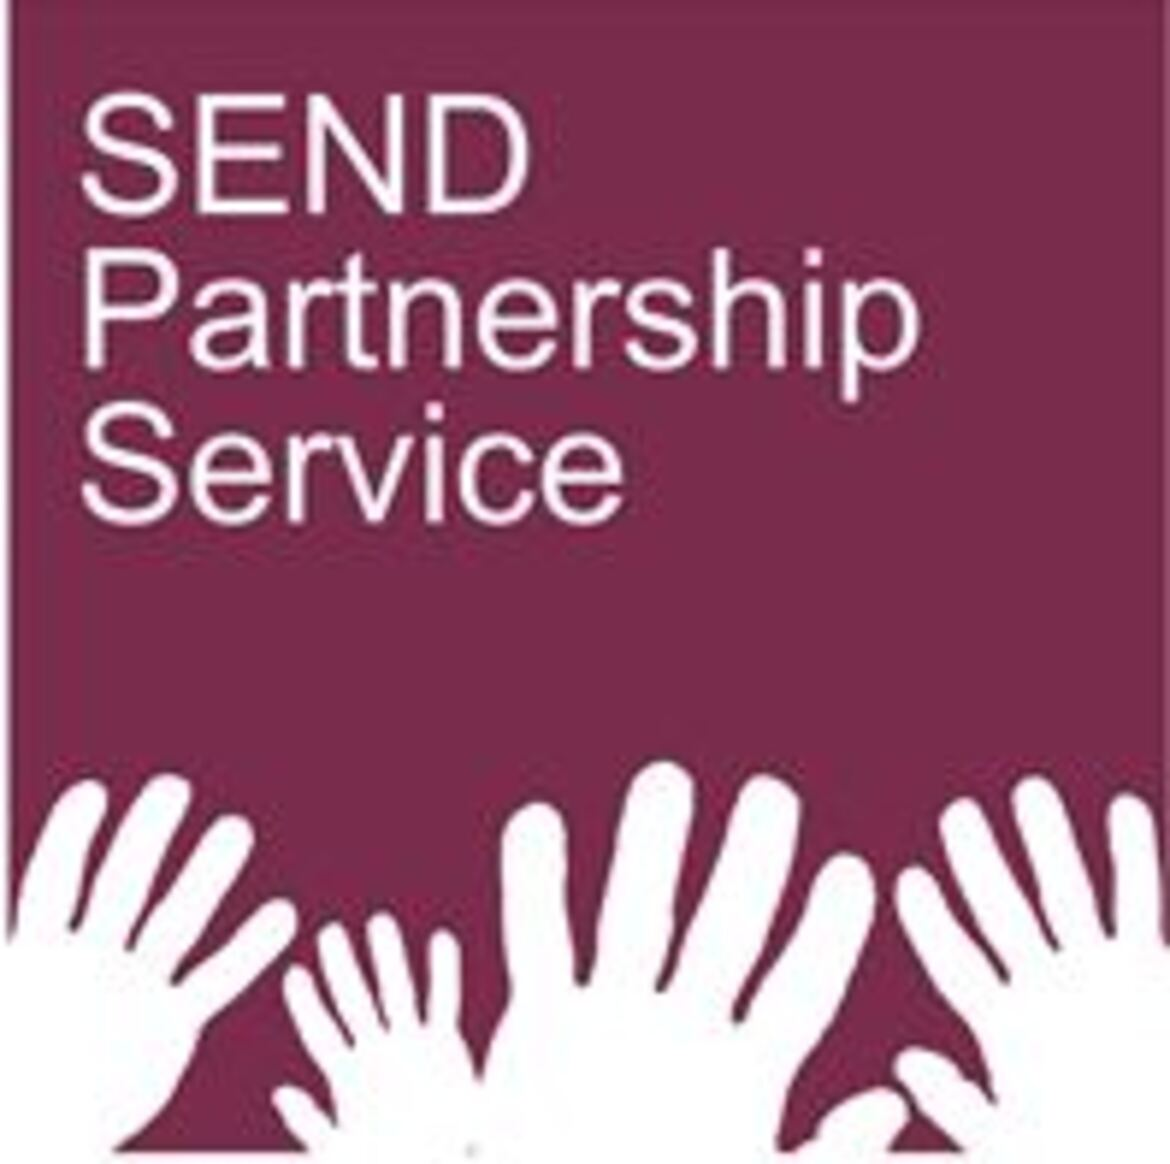 SEND Partnership Service Annual Report 2019-20